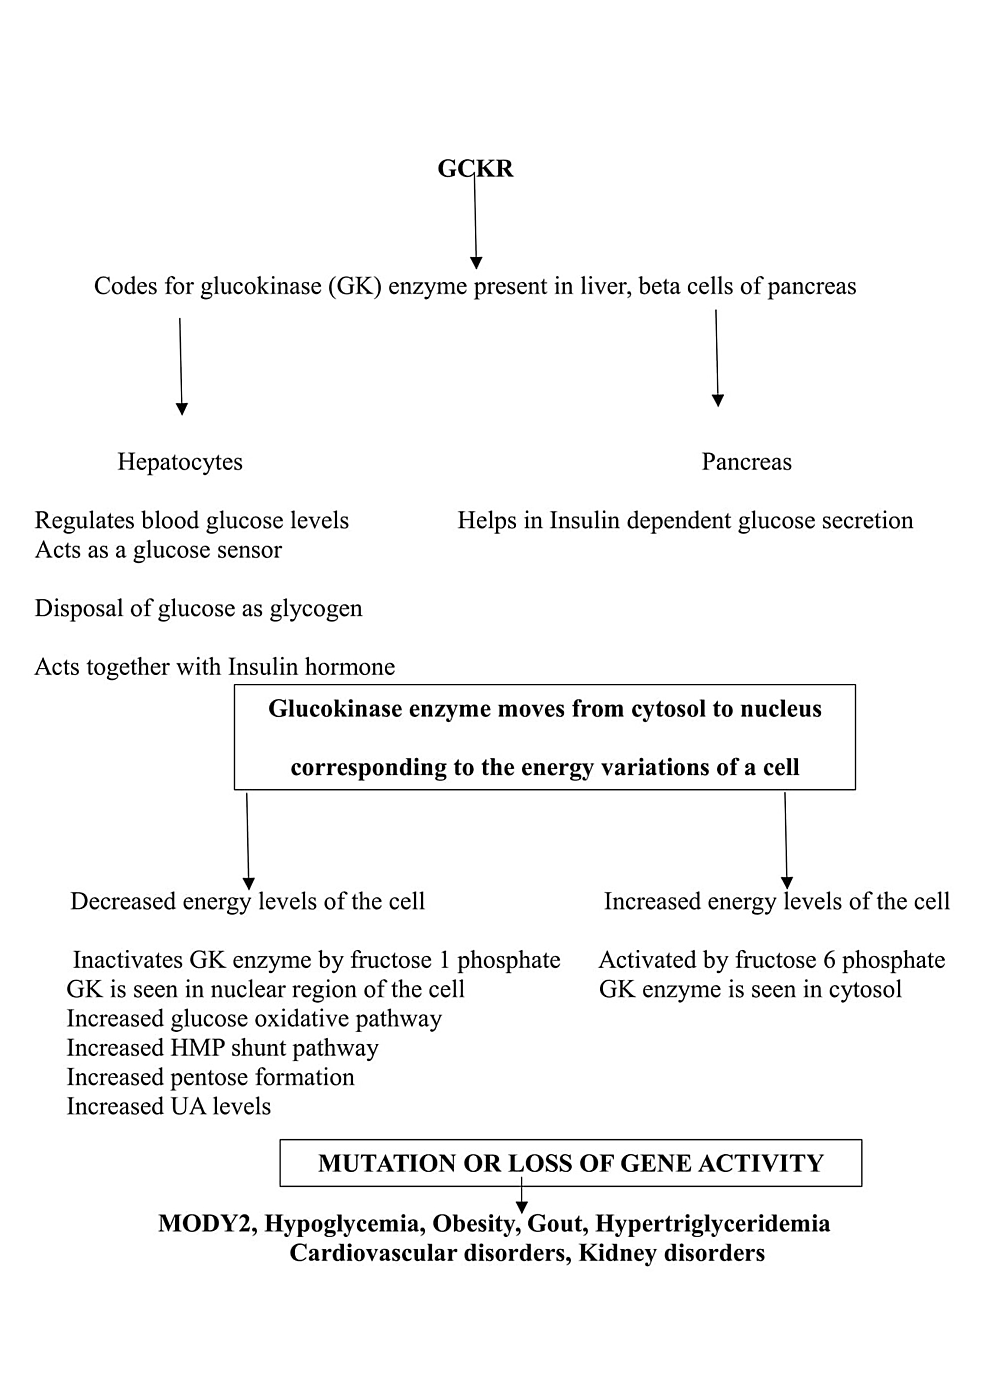 Flow-chart-showing-GCKR-gene-function-and-the-consequences-of-its-mutation.